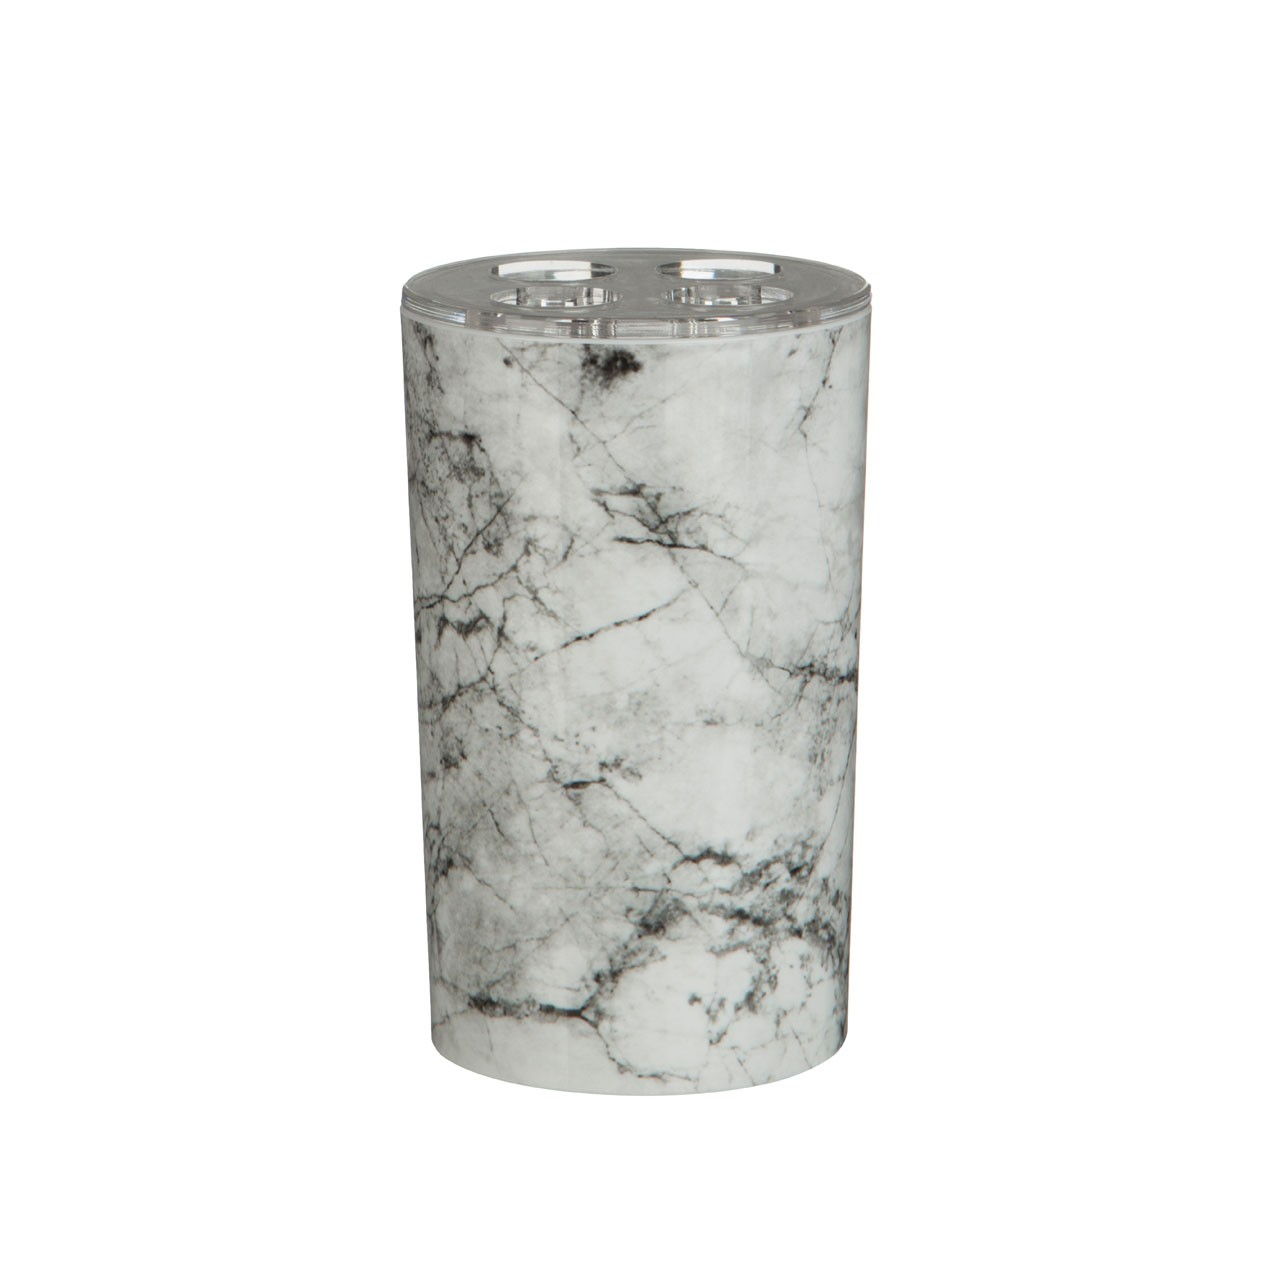 Prime Furnishing Rome Marble Effect Toothbrush Holder, Plastic